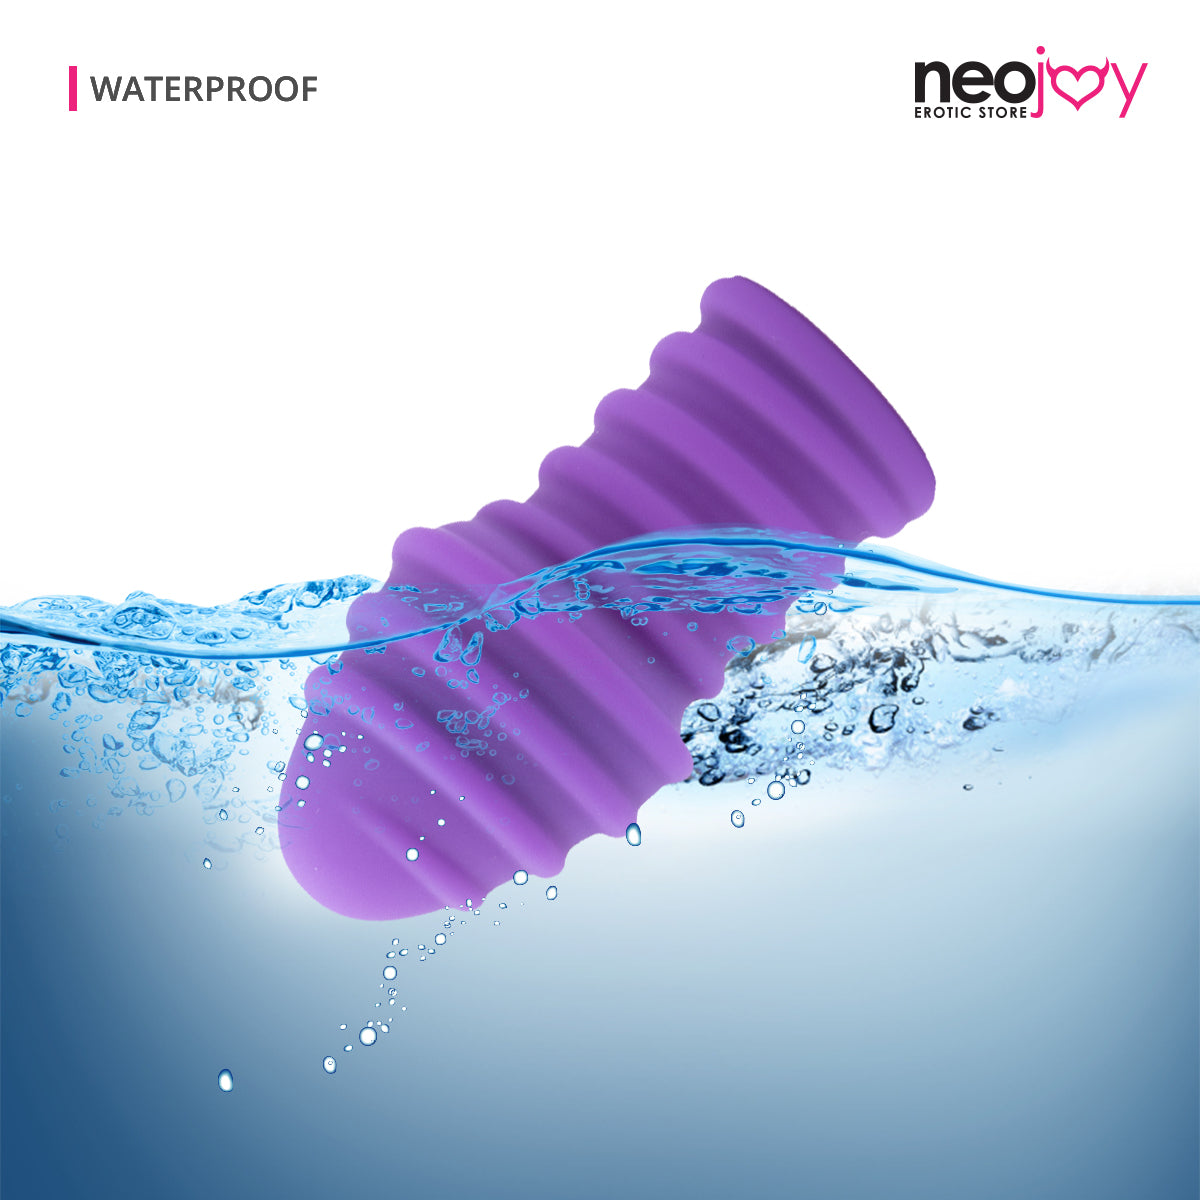 Neojoy Finger Sleeve Stimulator Finger Sleeves - lucidtoys.com Dildo vibrator sex toy love doll